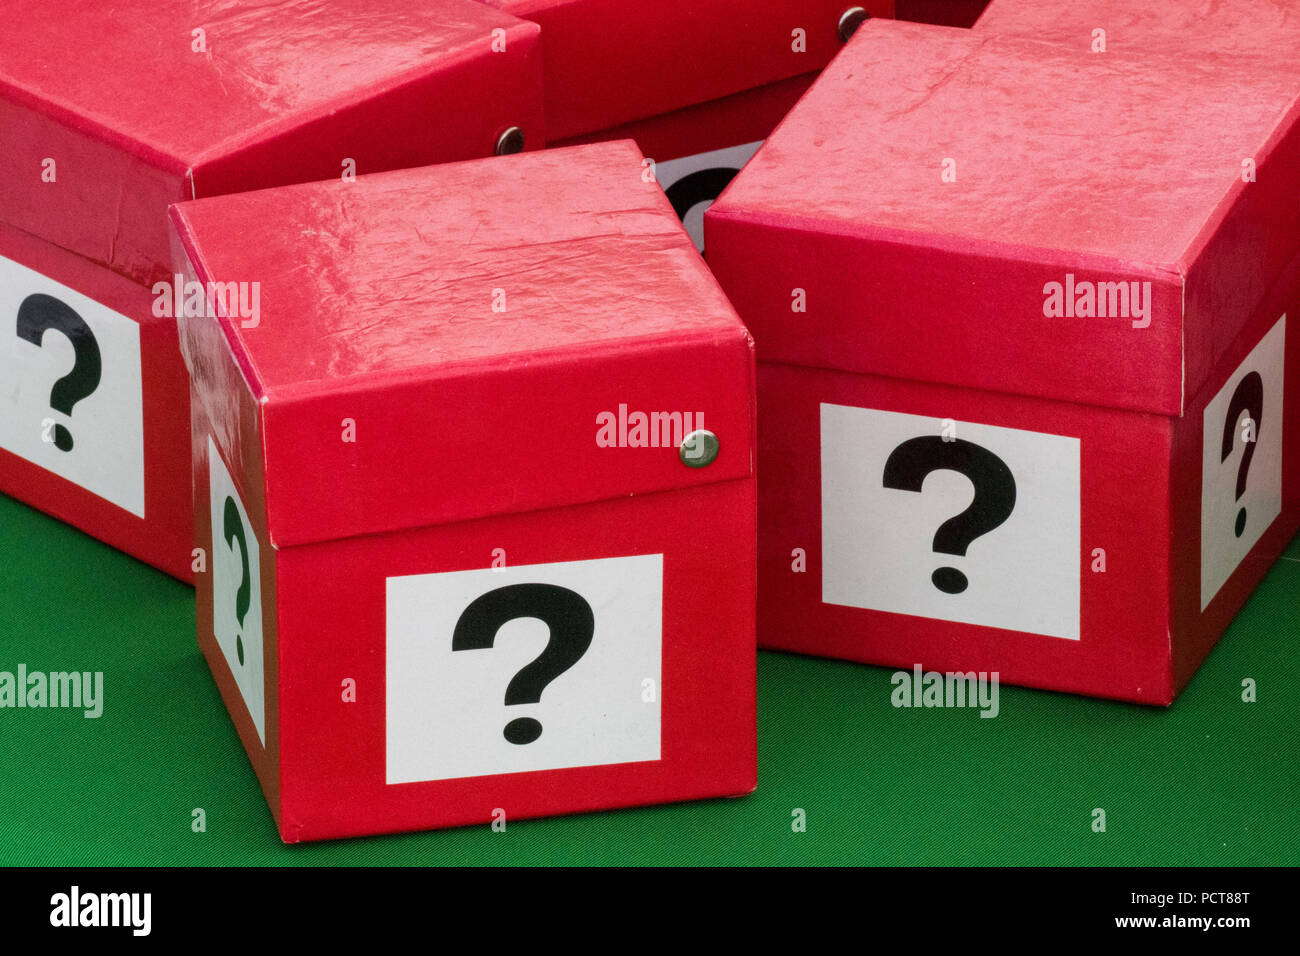 a number of red boxes painted with a question mark on each side. guessing what is in the secret box. lottery and gambling. - Stock Image